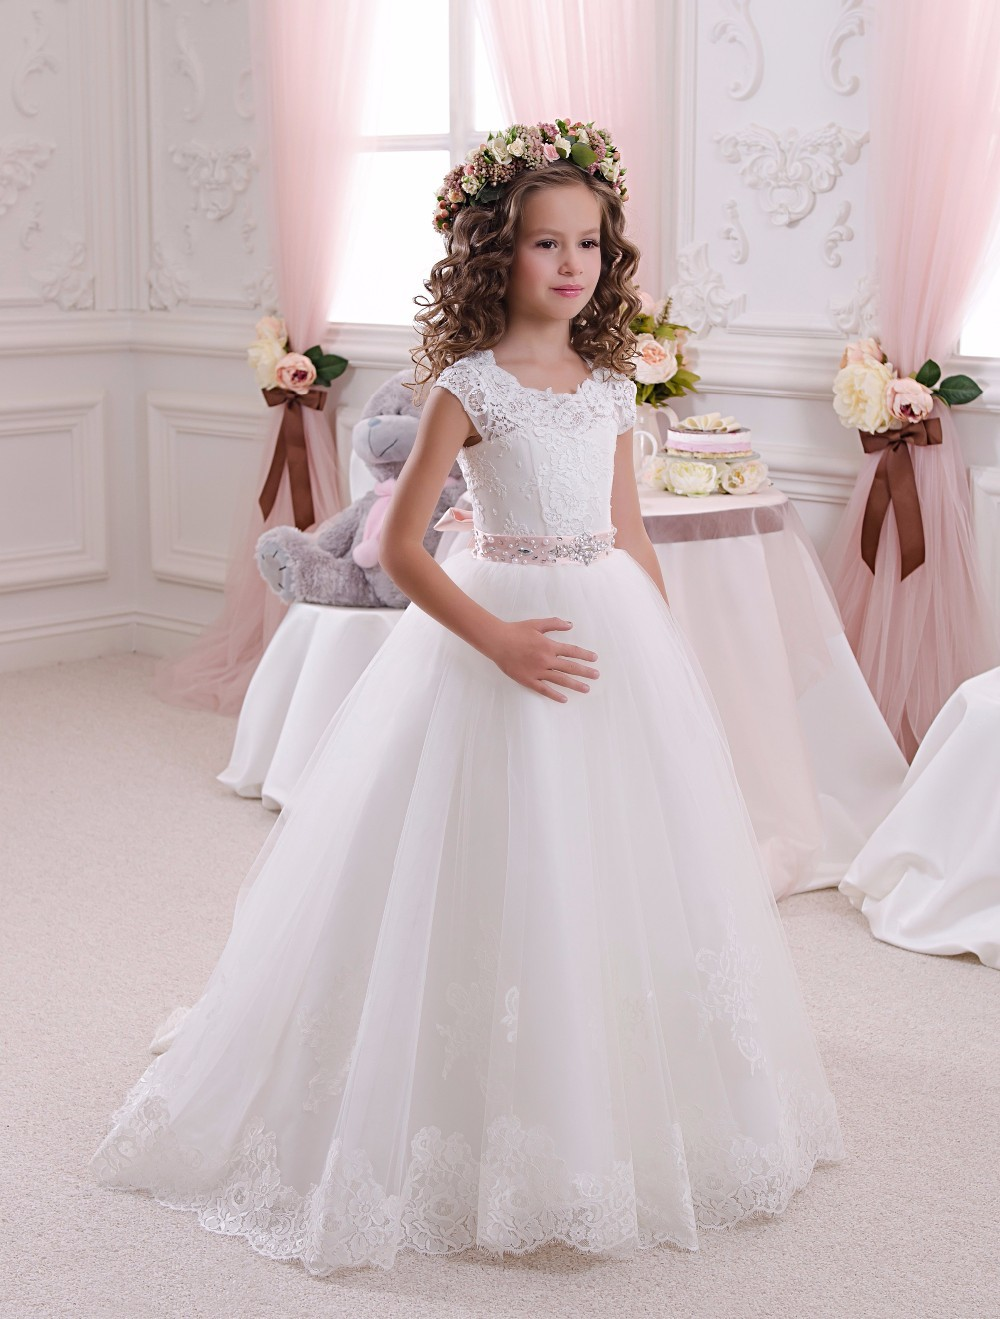 2018 Real Image Ivory White Lace   Flower     Girls     Dresses   Ball Gown Floor Length   Girls   First Communion   Dress   Princess   Dress   TL45678